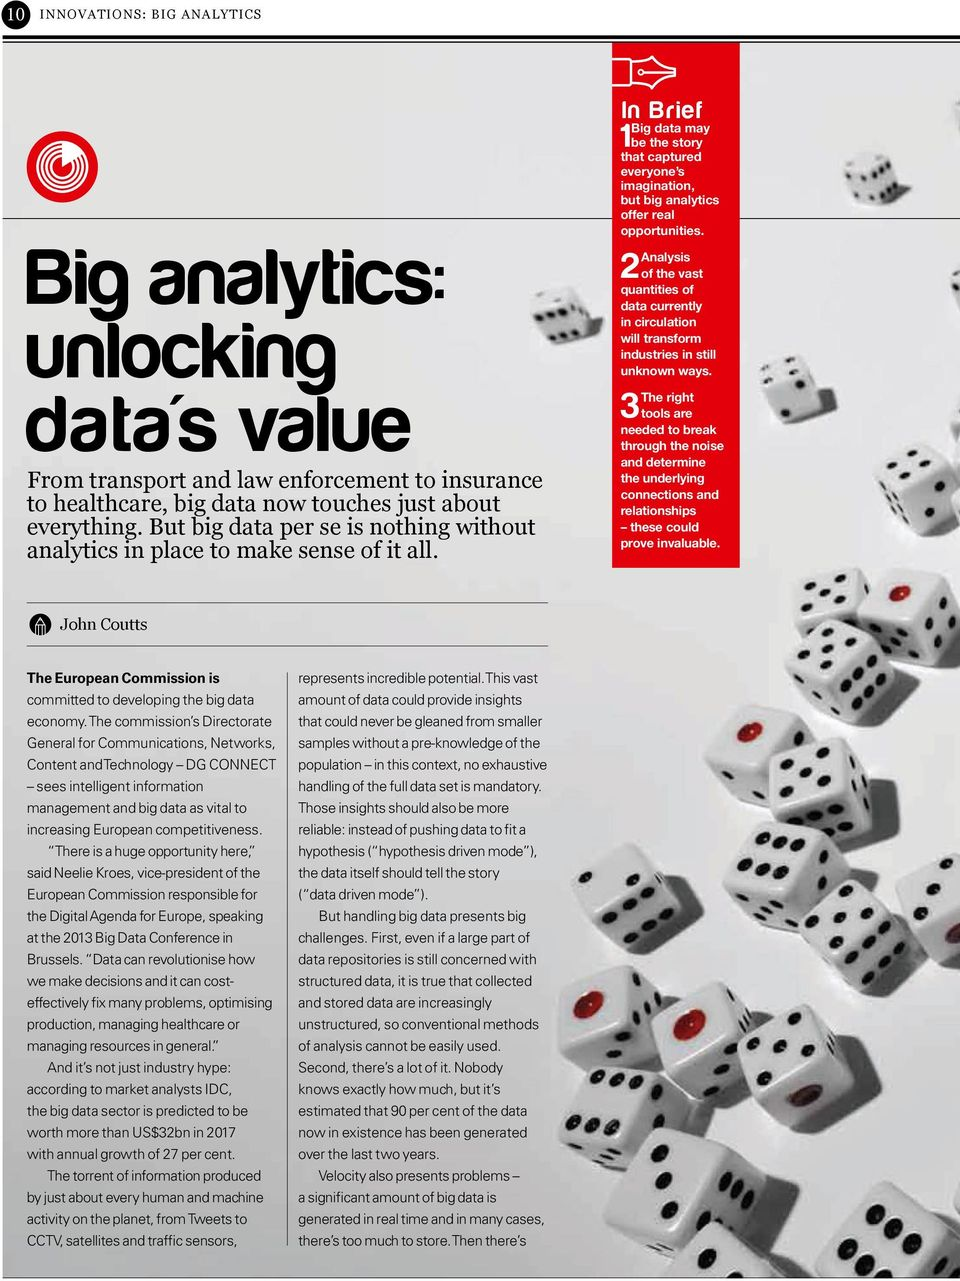 In Brief 1 Big data may be the story that captured everyone s imagination, but big analytics offer real opportunities.